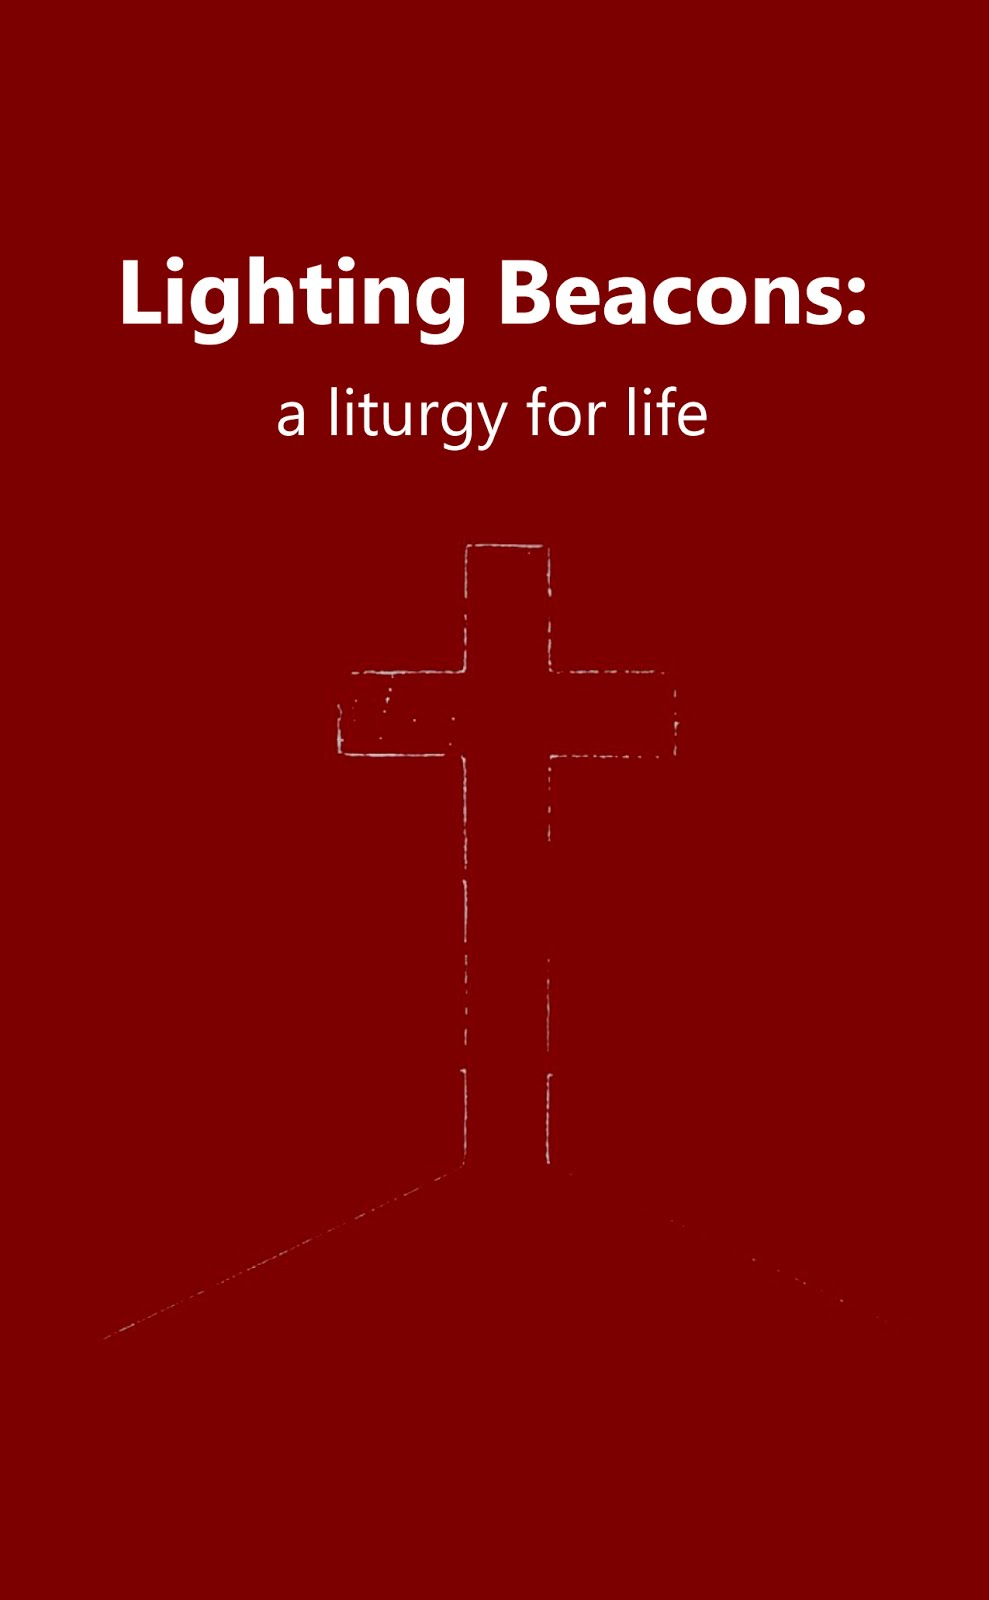 Lighting Beacons: a liturgy for life